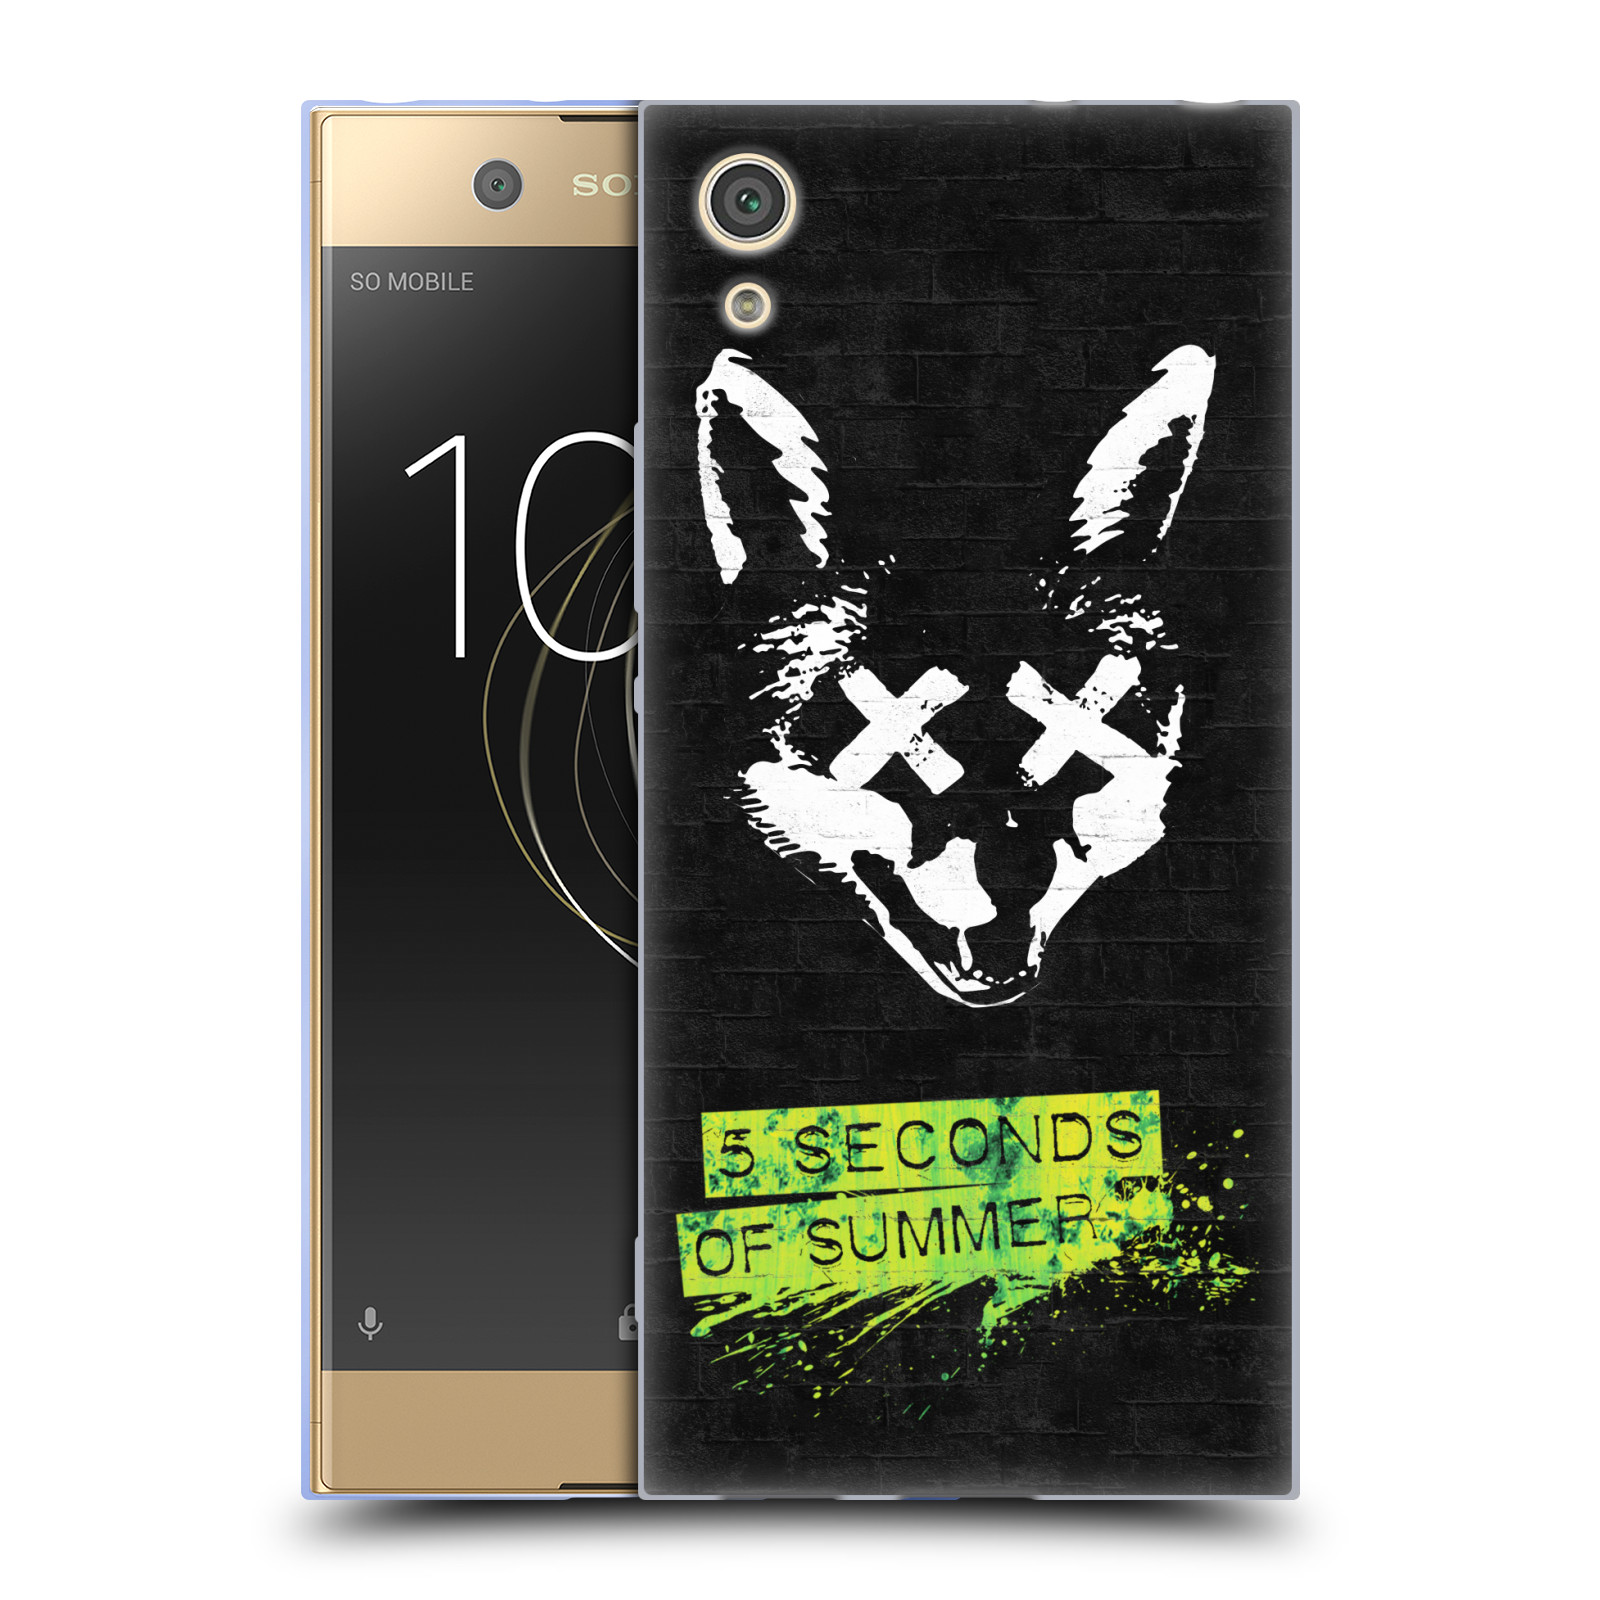 Silikonové pouzdro na mobil Sony Xperia XA1 - Head Case - 5 Seconds of Summer - Fox